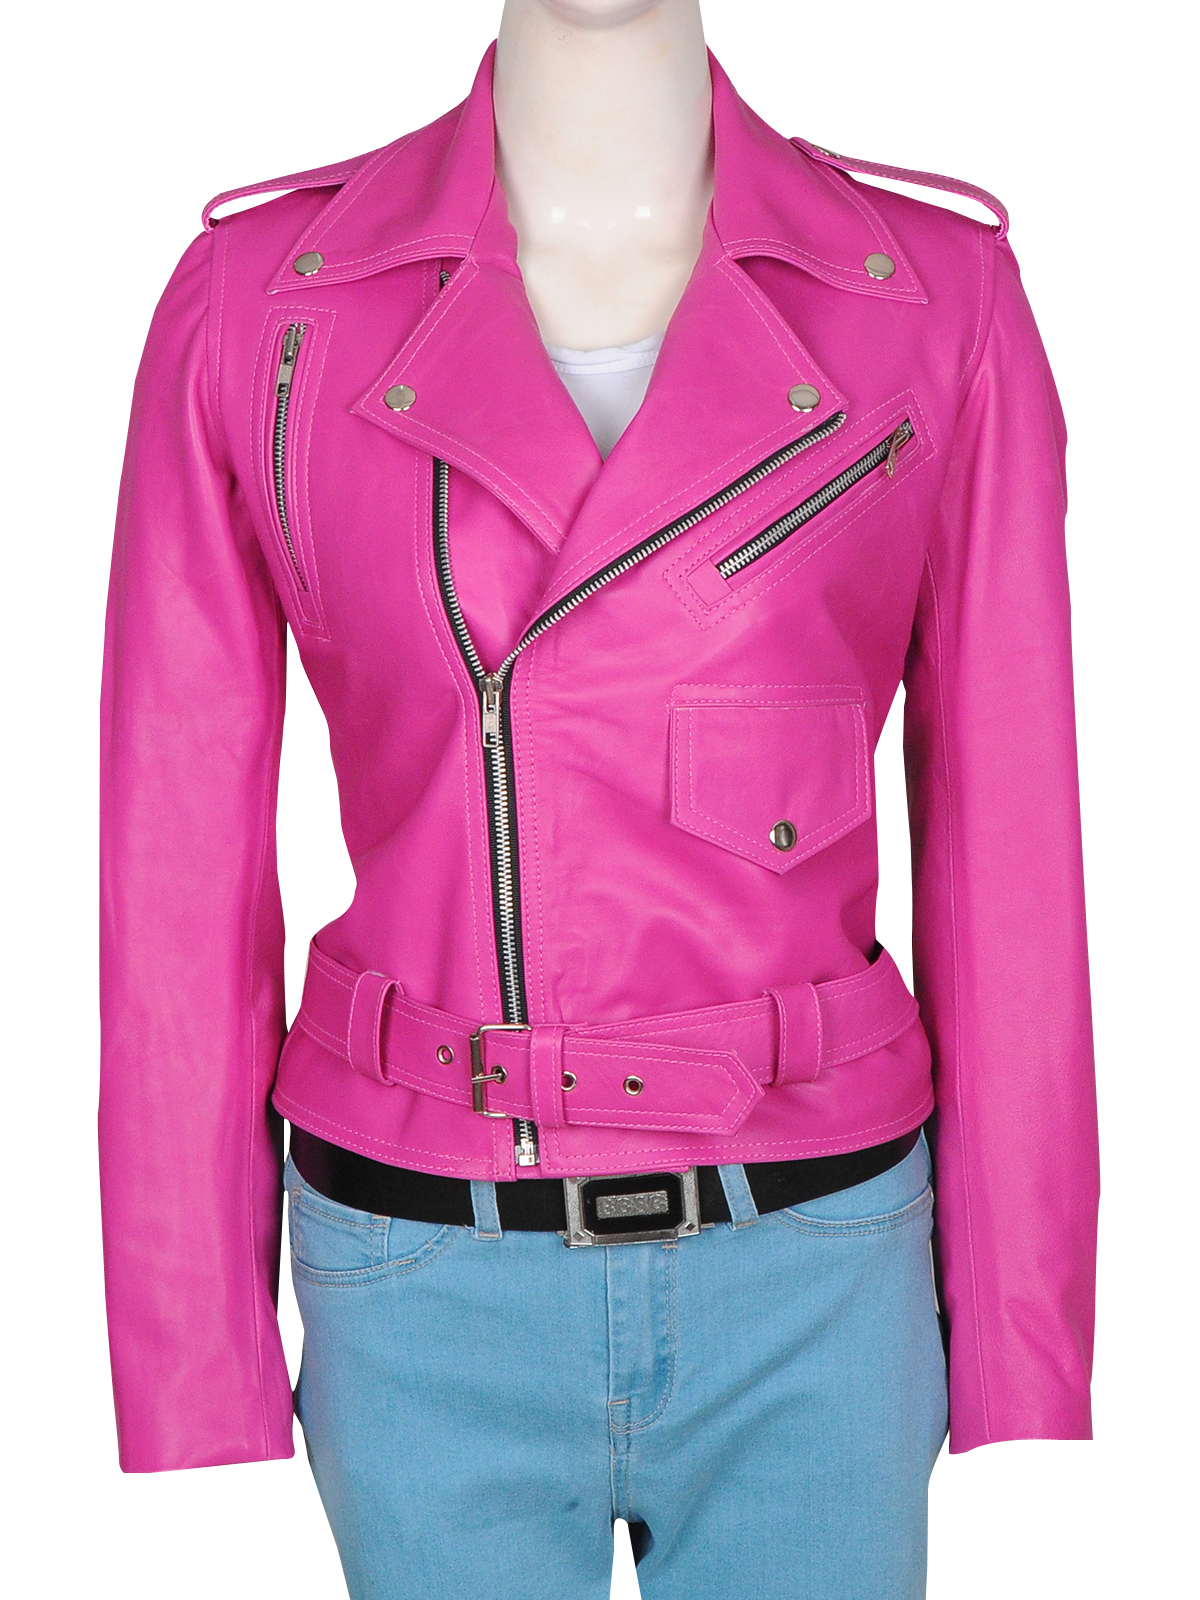 Hot Jessica Alba Pink Leather Jacket